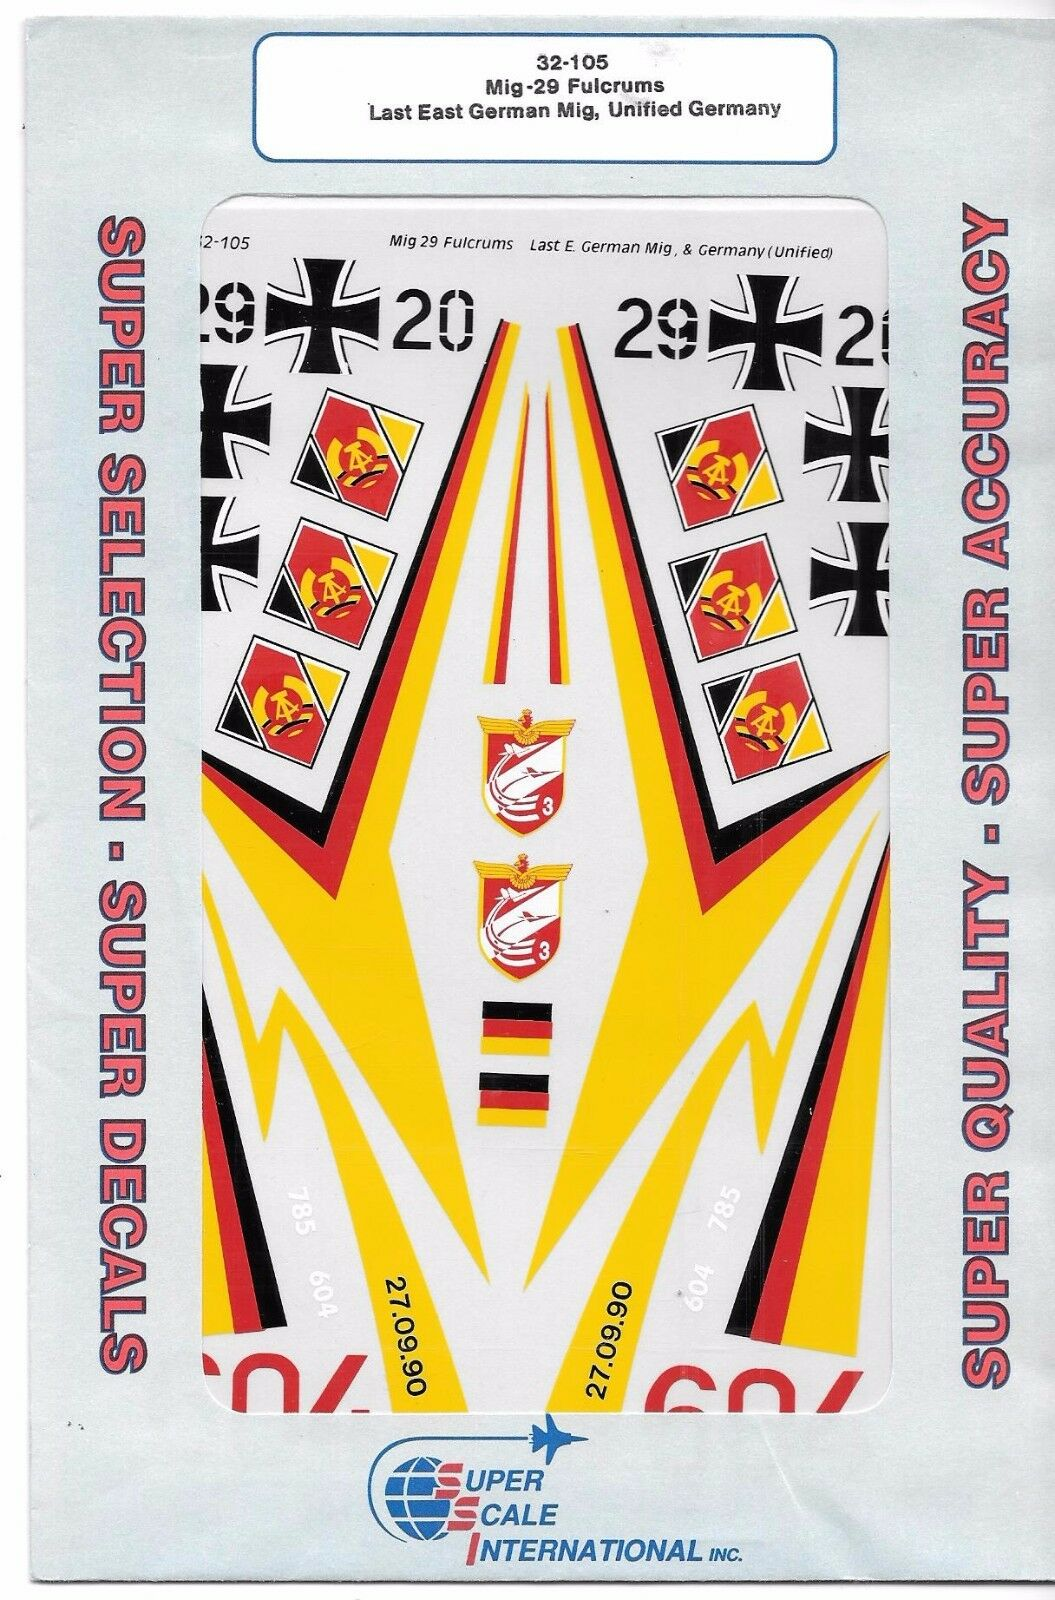 Super Scale Mig-29 Fulcrums, Last East German Mig, Unified Germany Decals 1 32